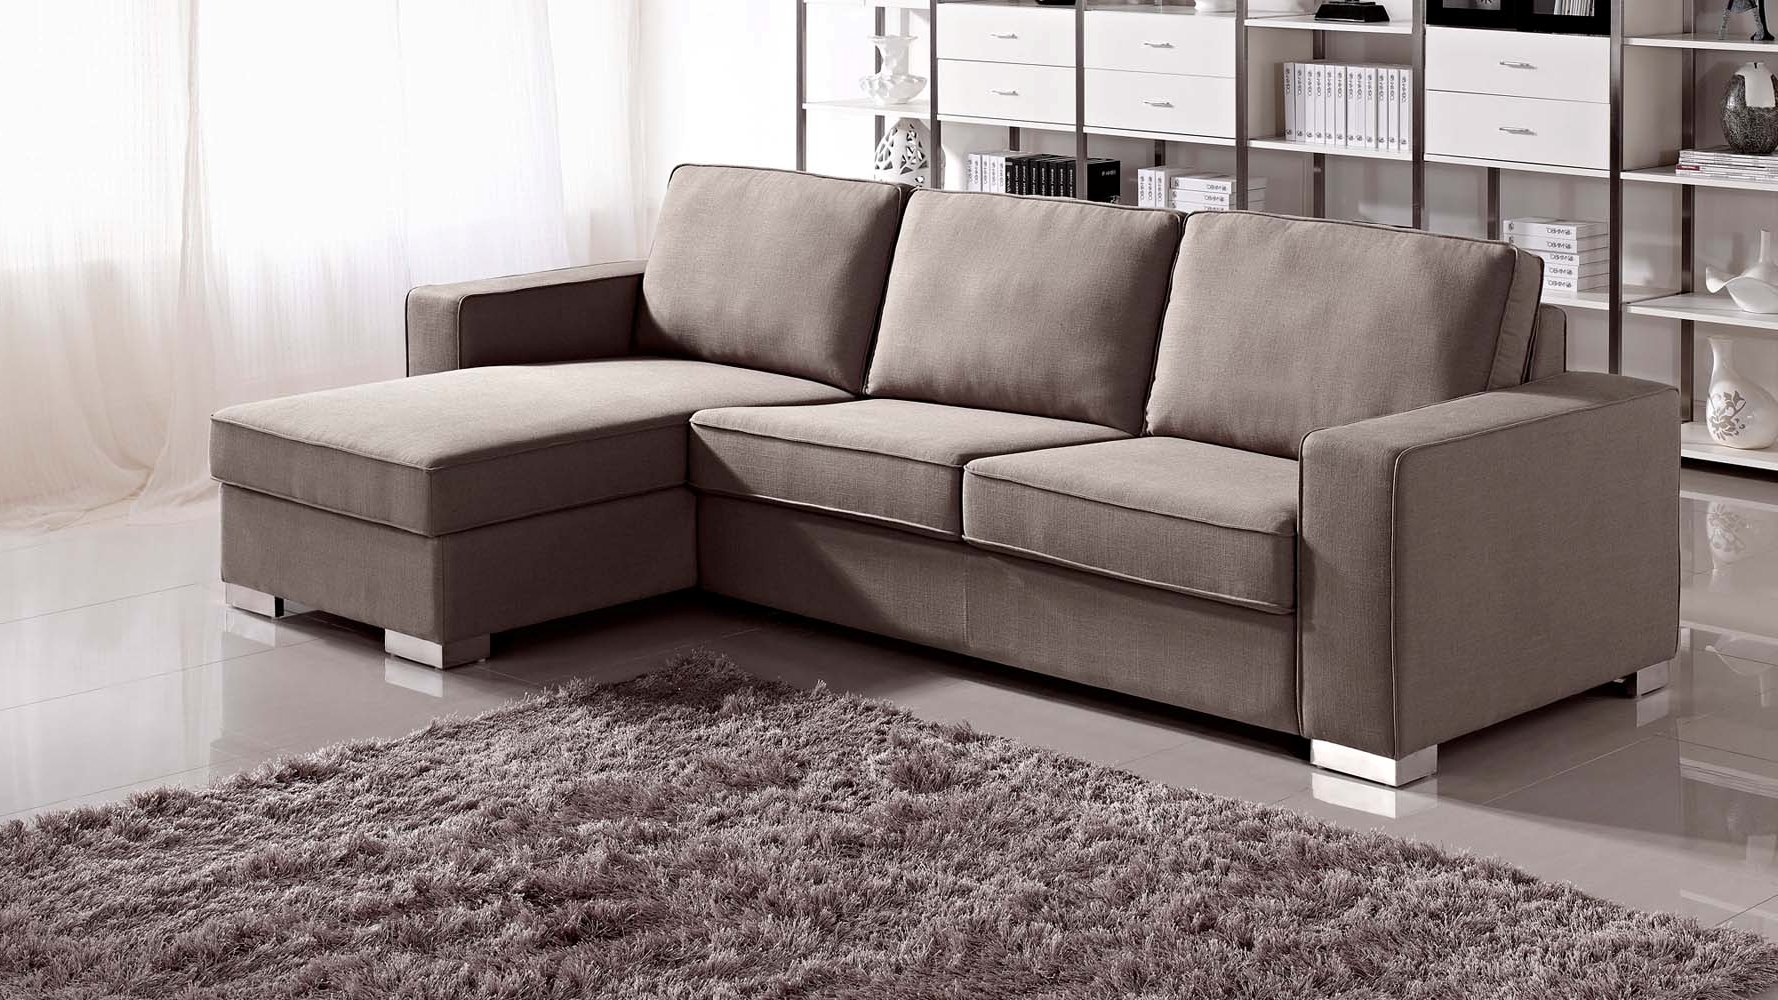 Photos of ... Sofa Bed Ikea Chloe Brown Sleeper Sectional Sofa Free Brown Fabric Sectional sofa bed sectional